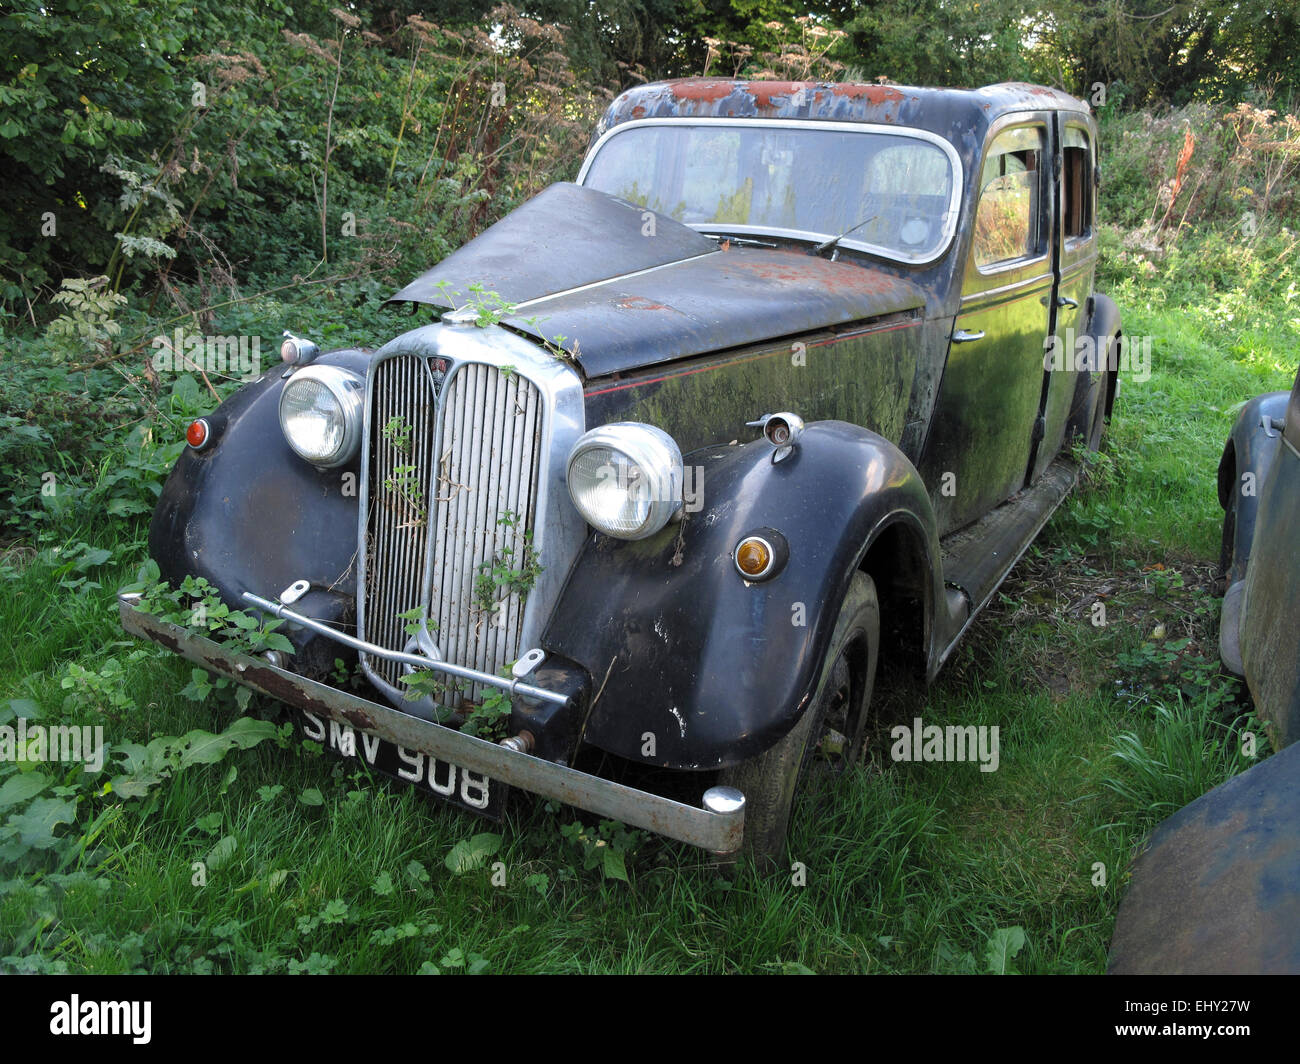 A Derelict Rover 12 abandoned in a Field - 1 - Stock Image